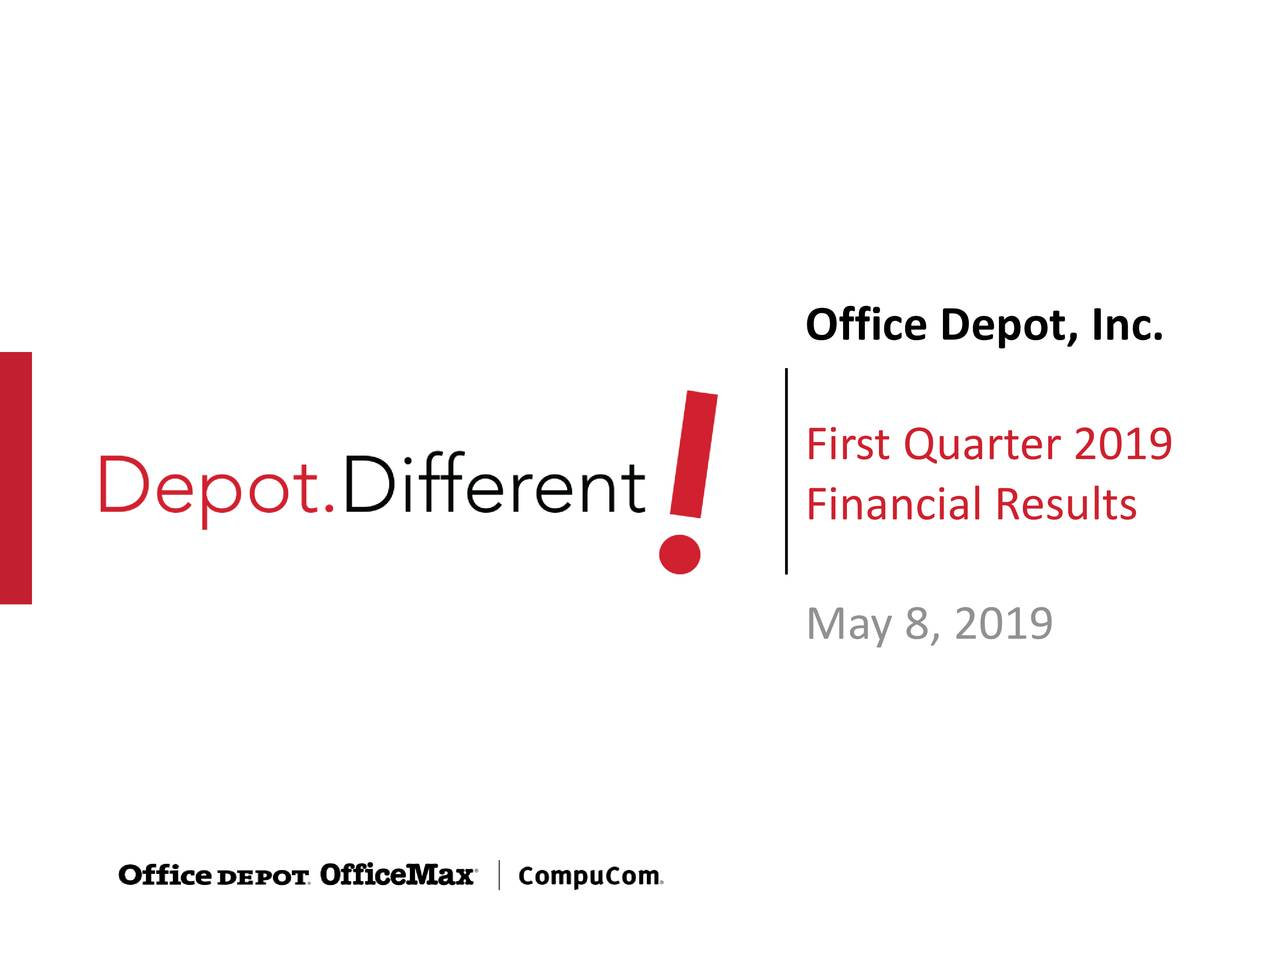 First Quarter 2019 Financial Results May 8, 2019